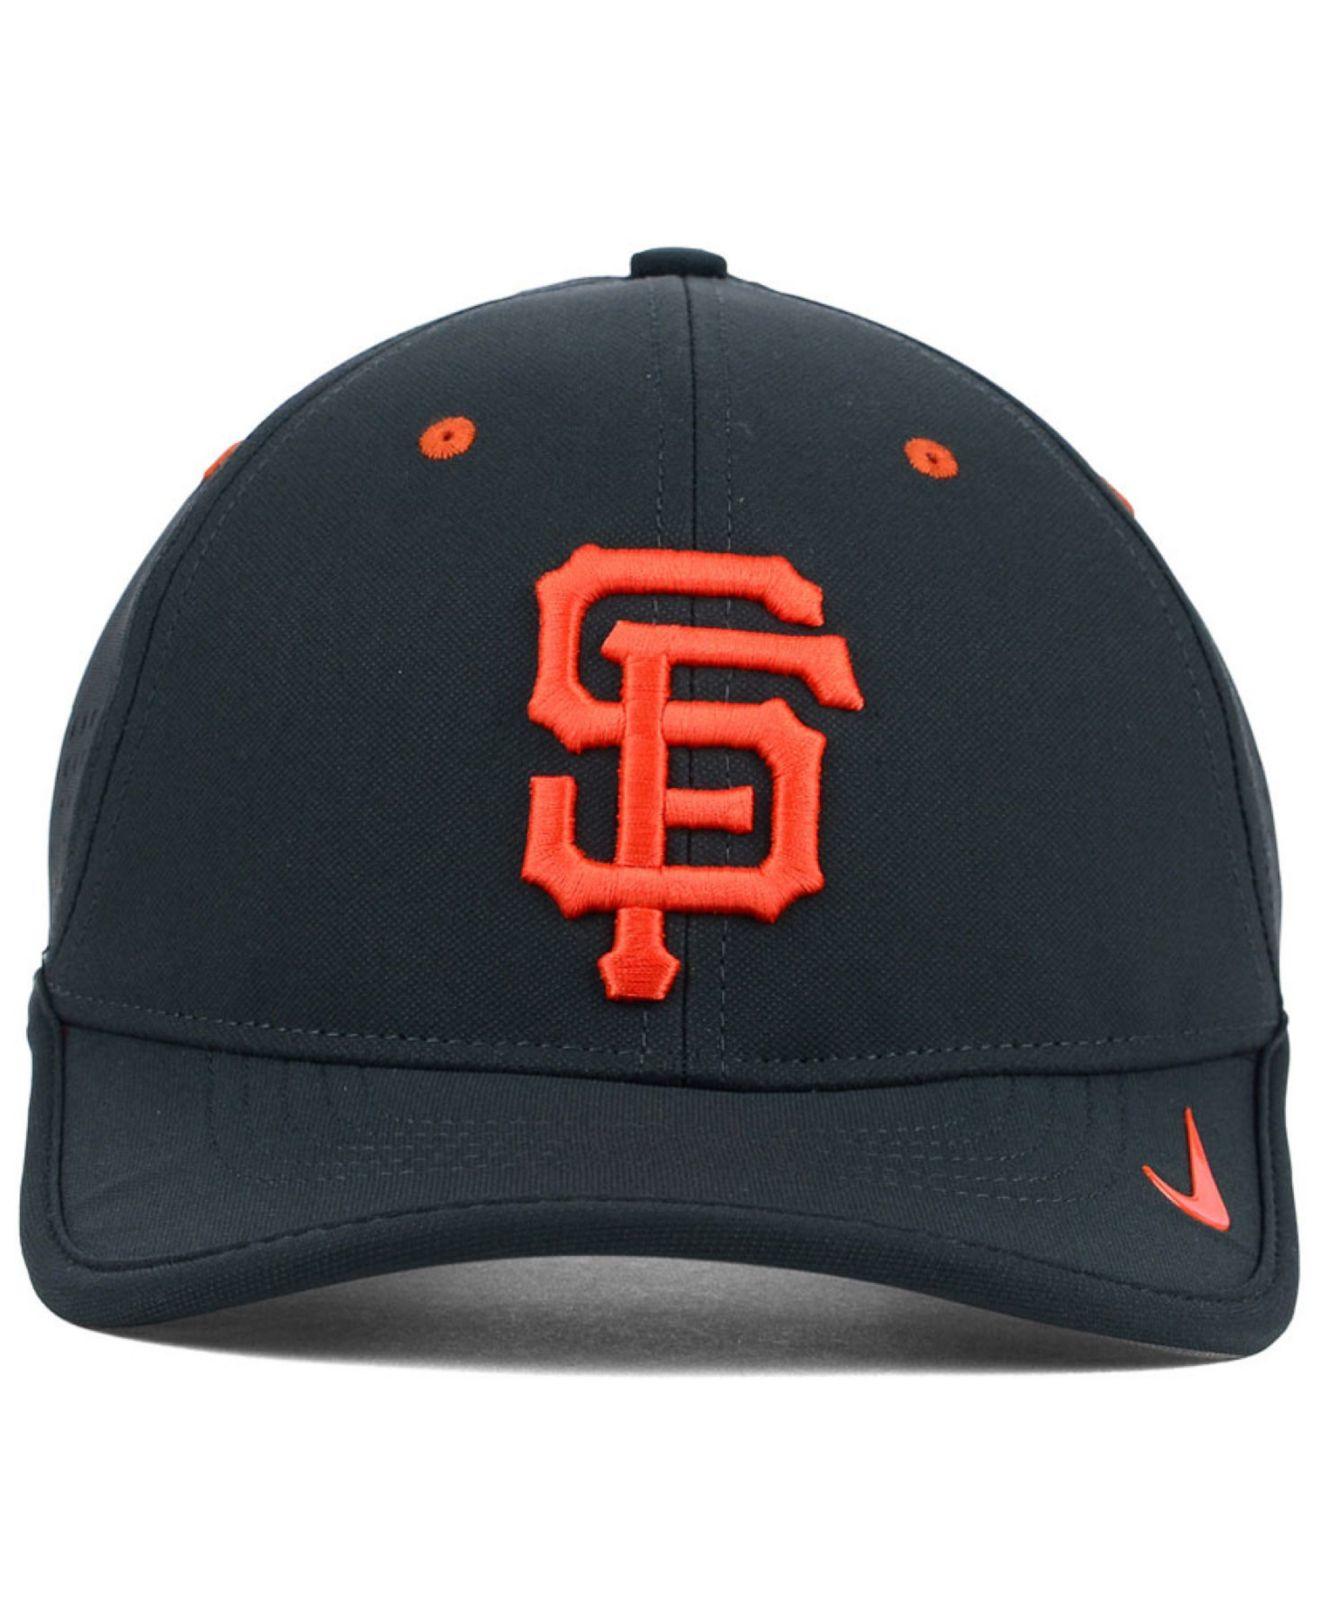 3f53f986f5bba Nike San Francisco Giants Vapor Swoosh Adjustable Cap in Gray for ...